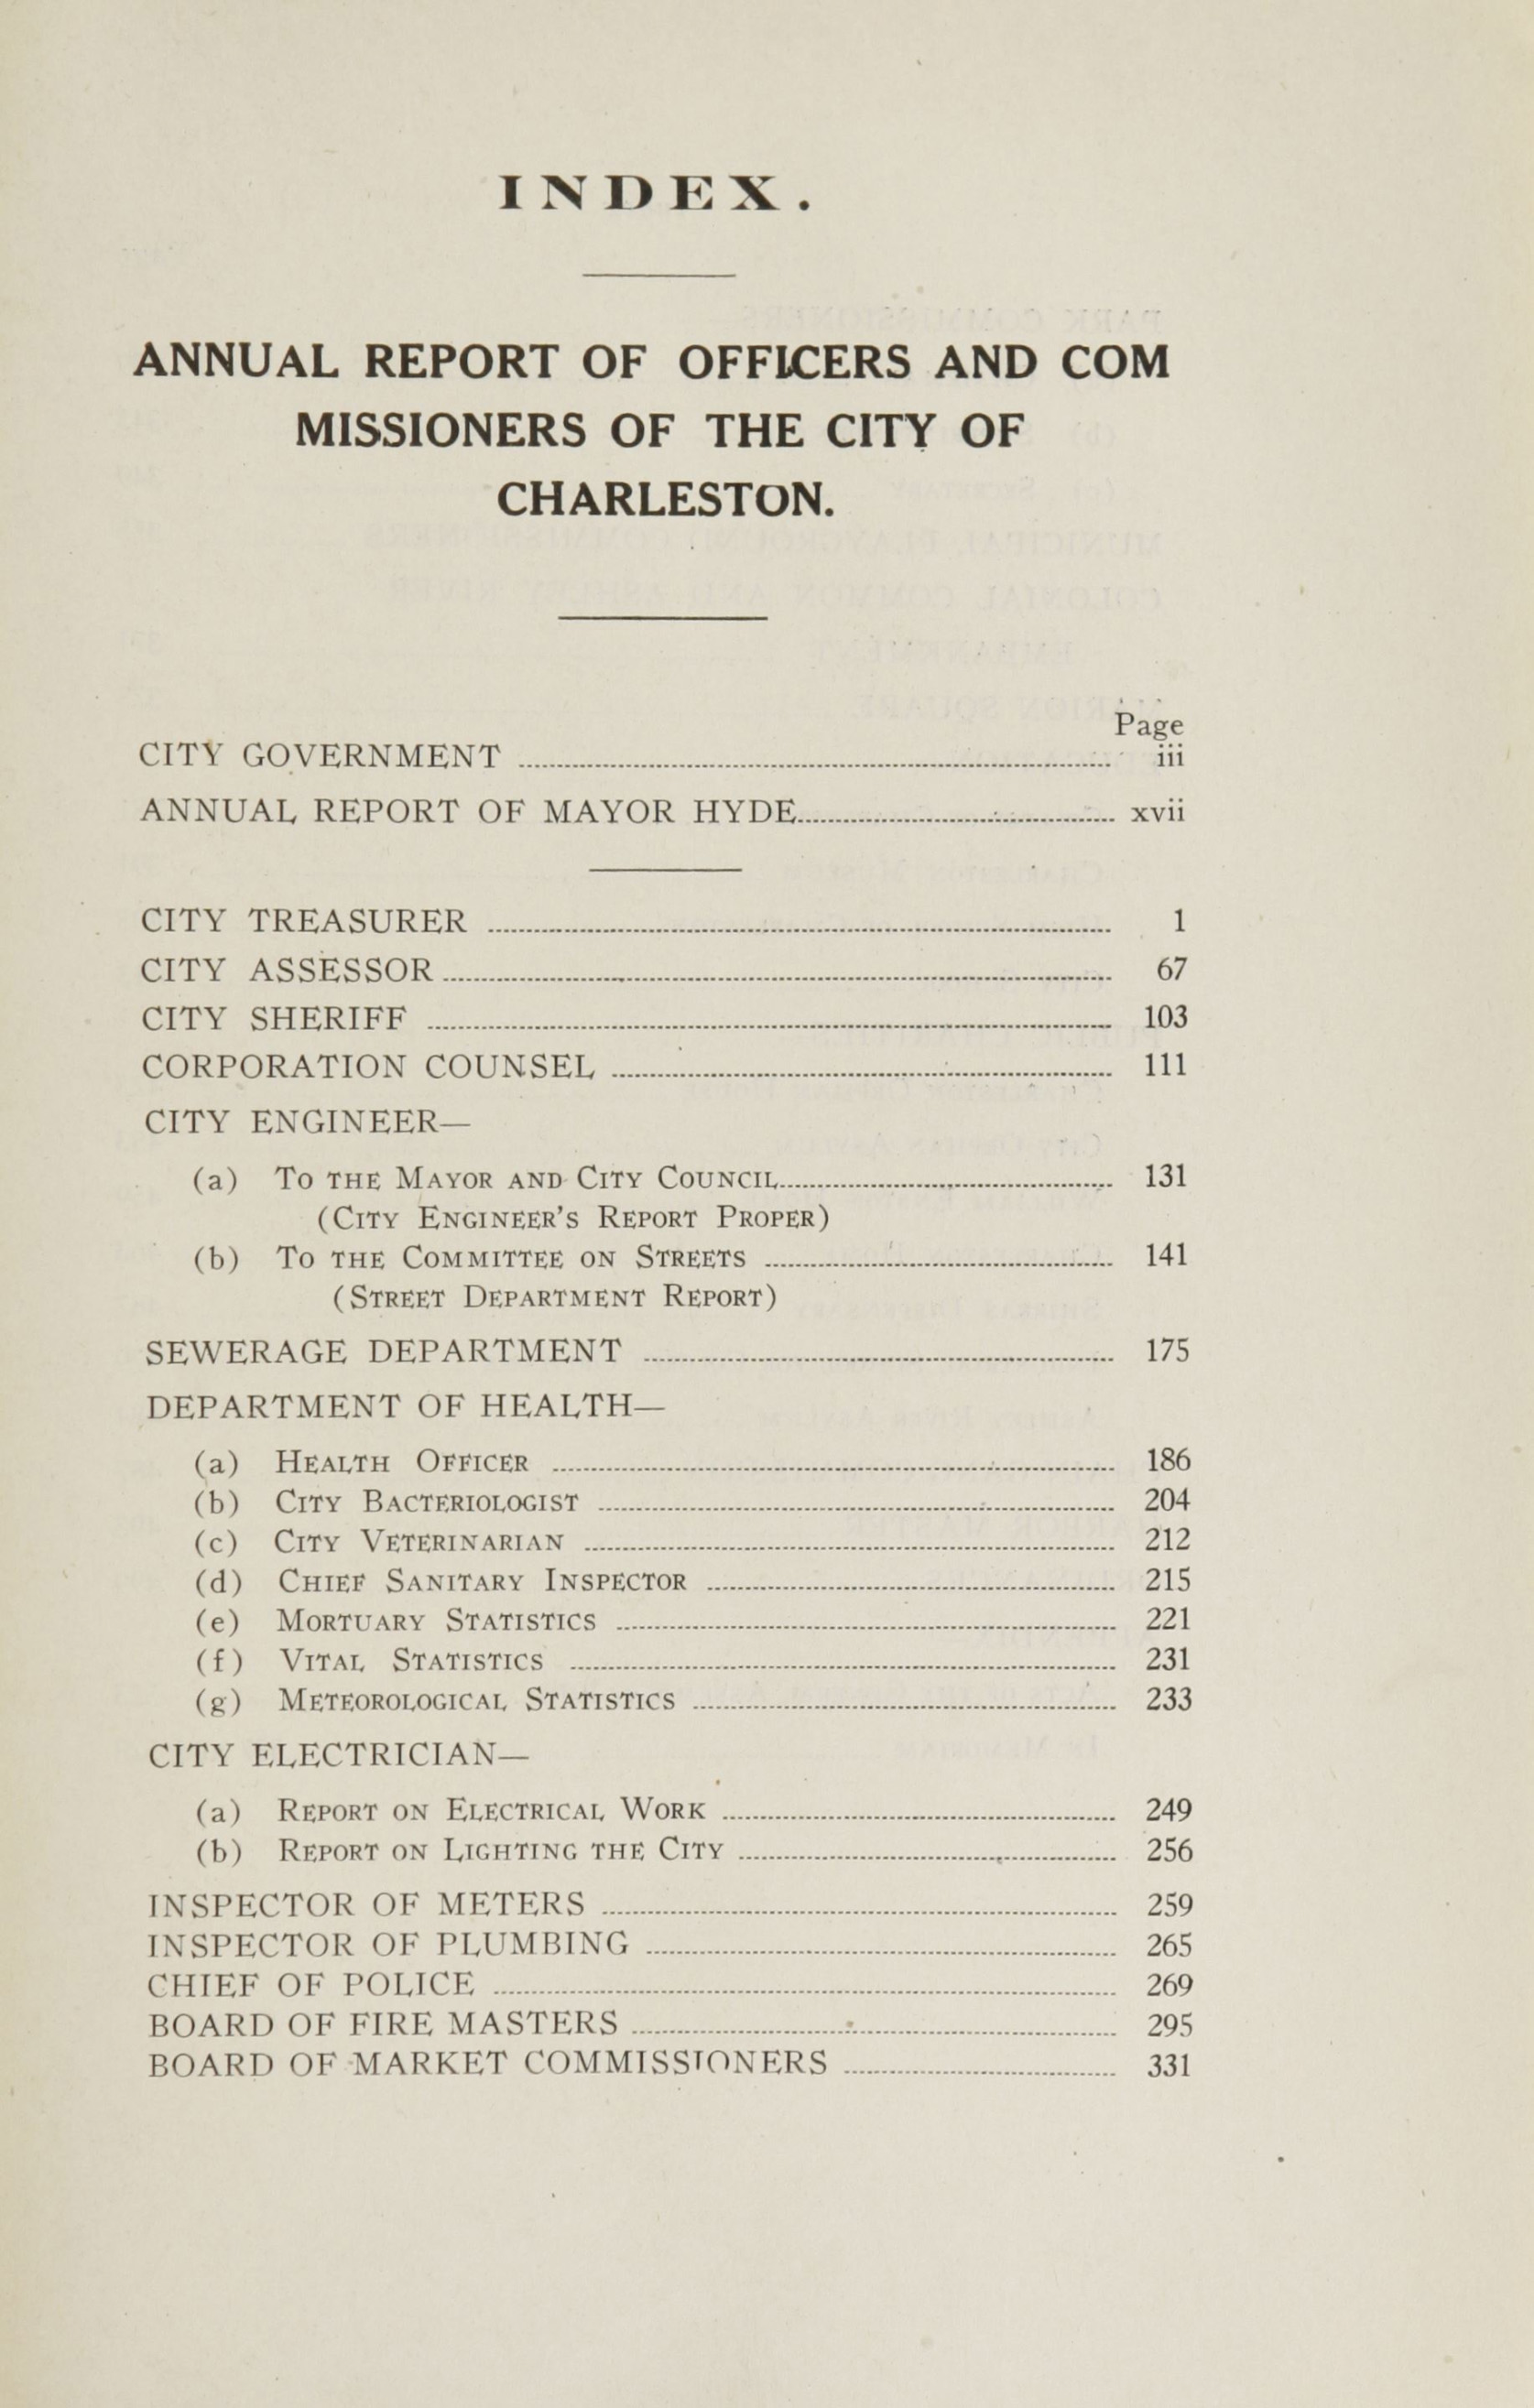 Charleston Yearbook, 1916, page xxv